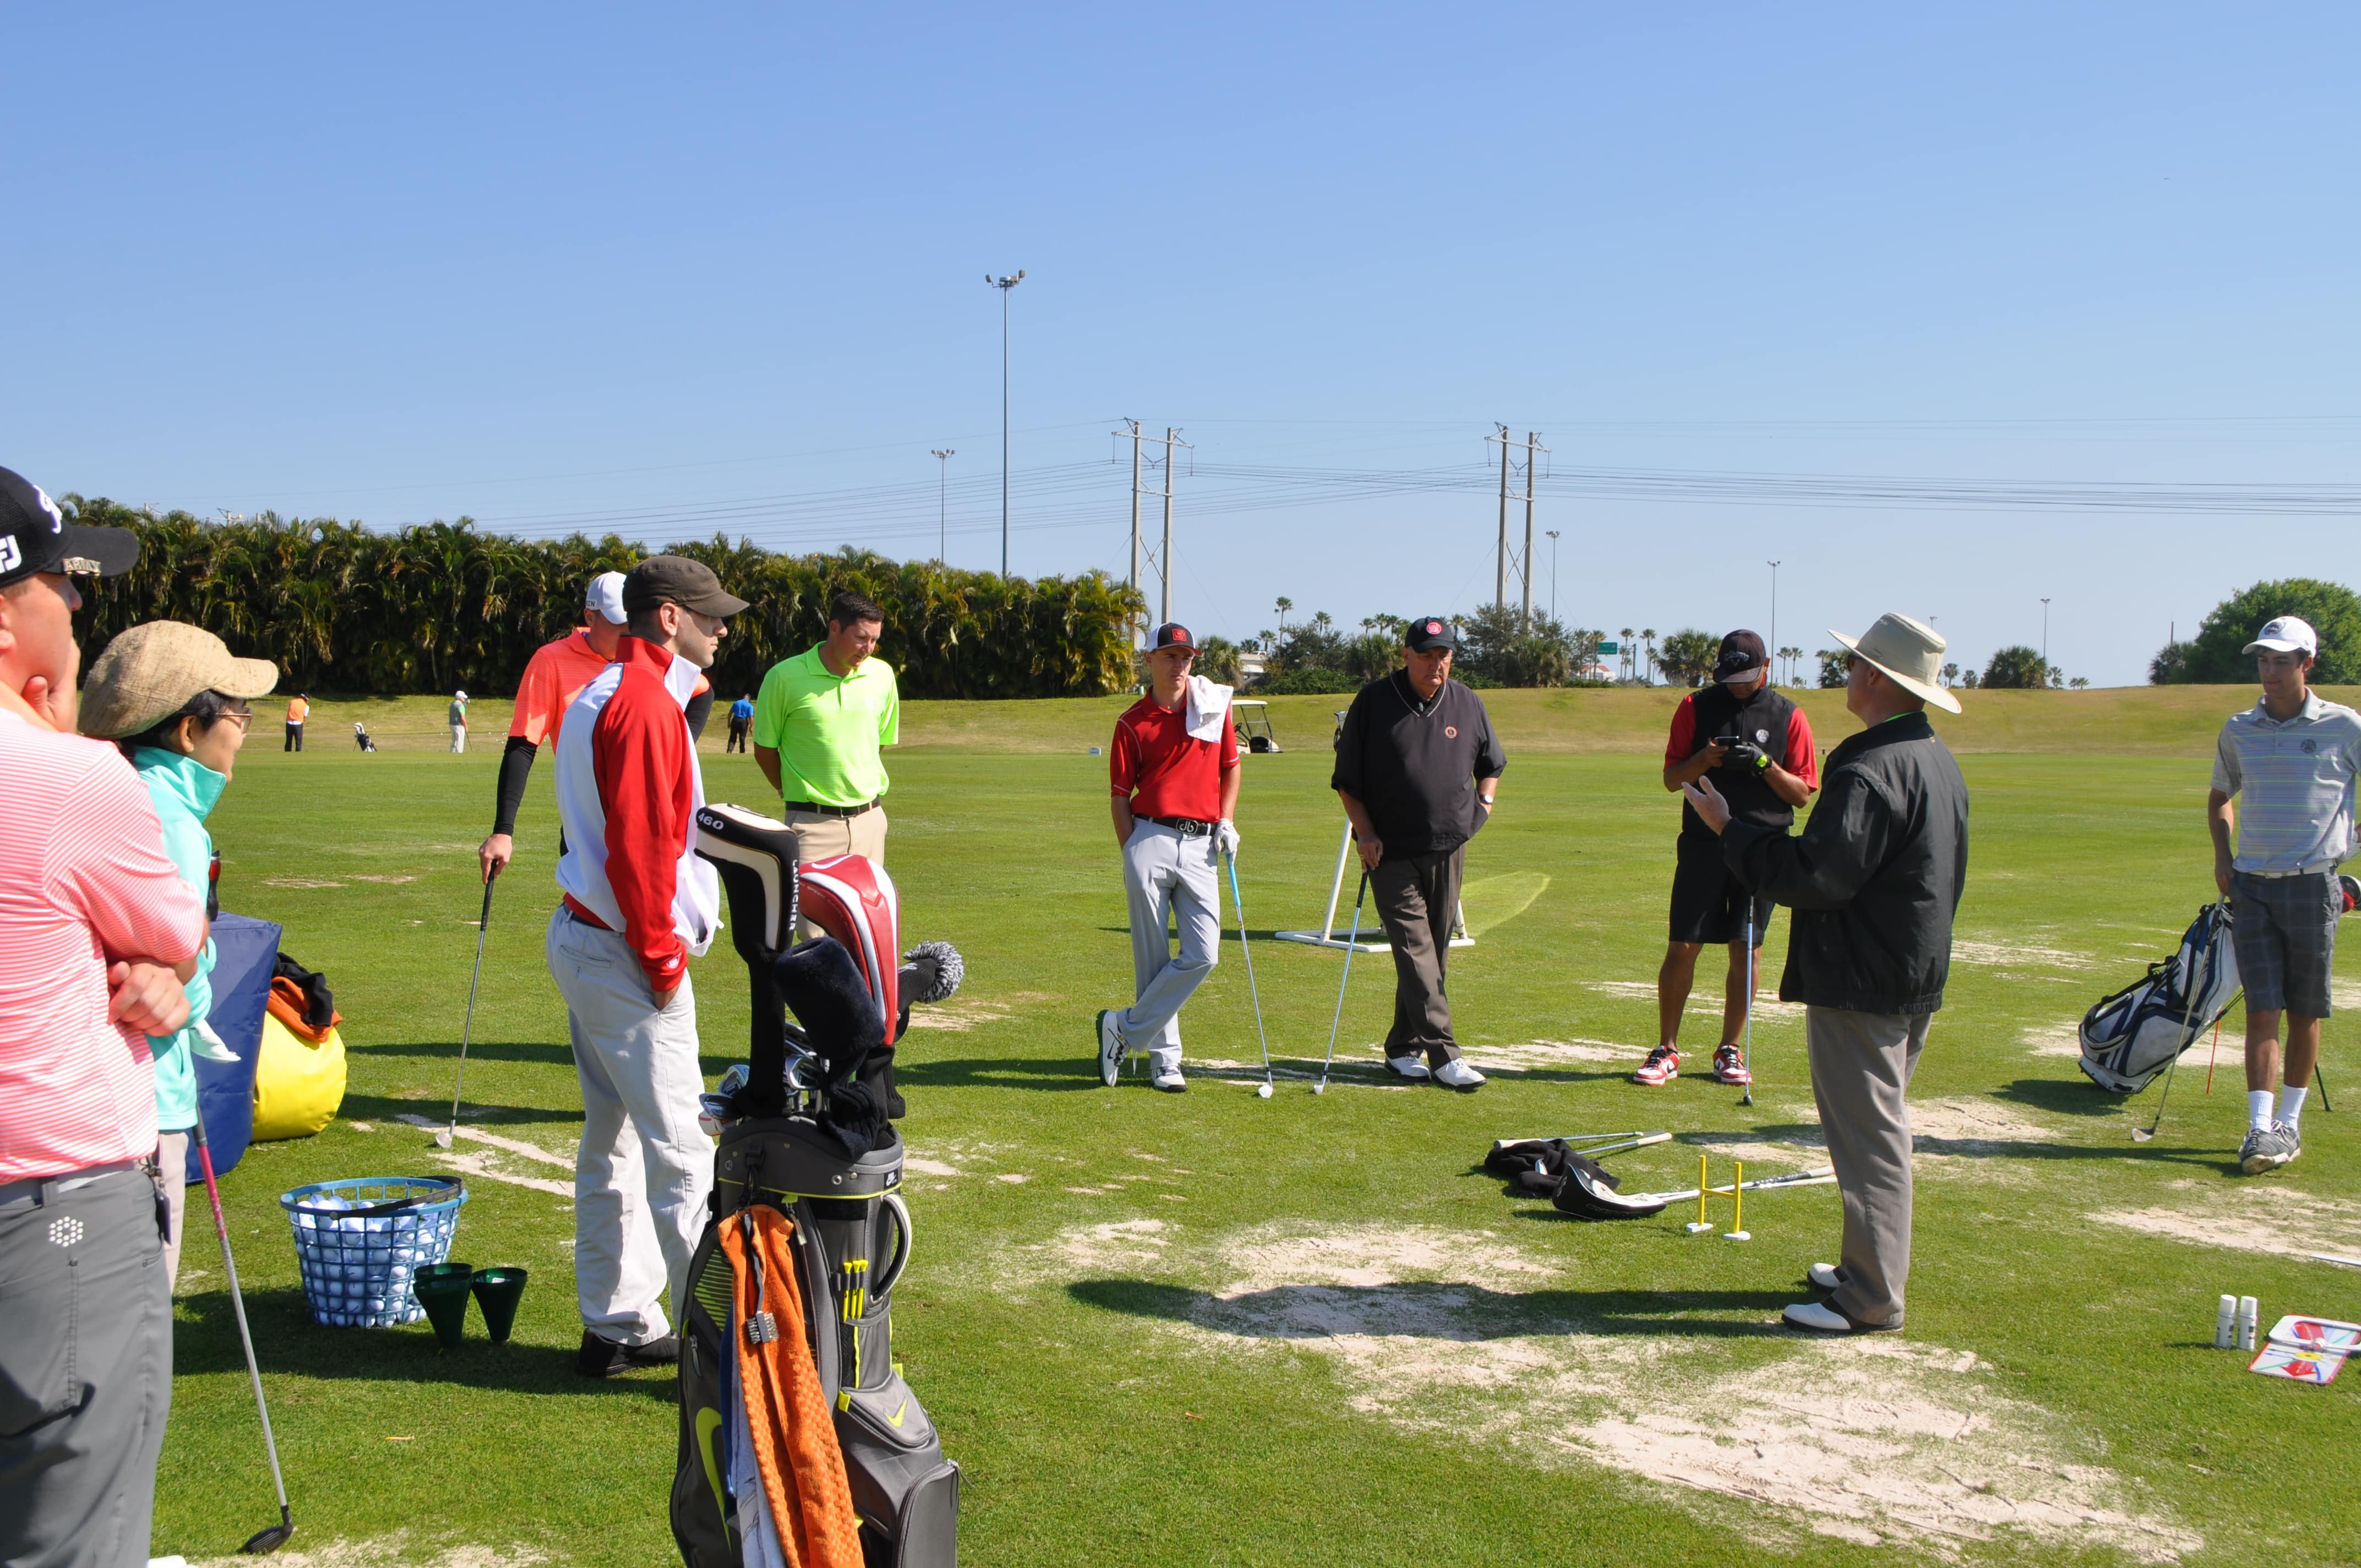 COGSM Students Attend a Full Swing Golf Clinic at the PGA Learning Center